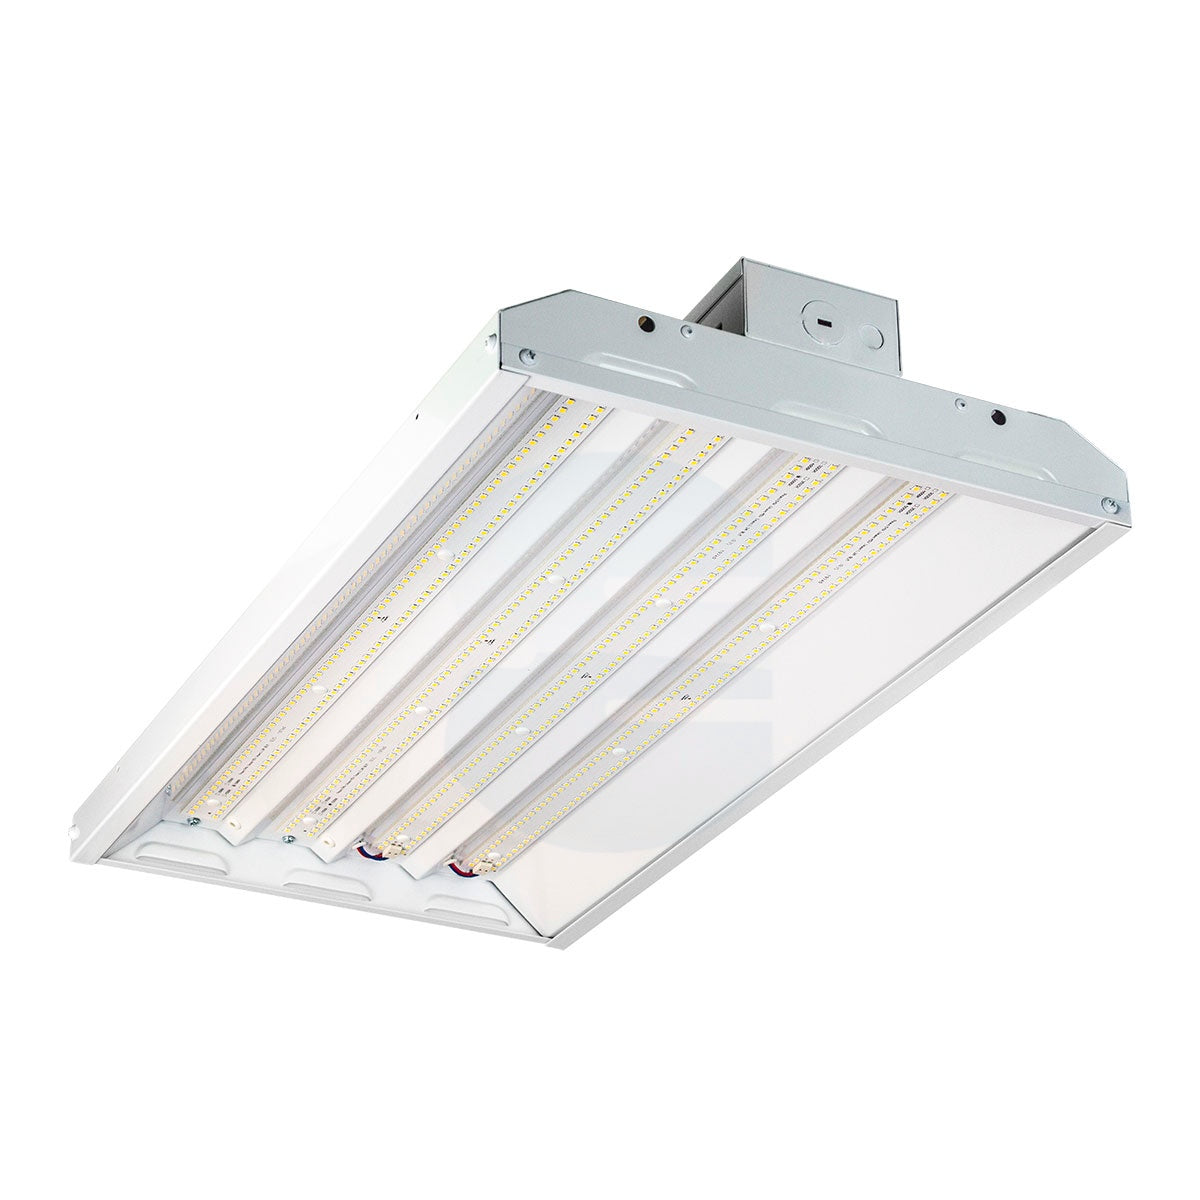 LED Linear High Bay - 90W - 12K Lm - 5000K